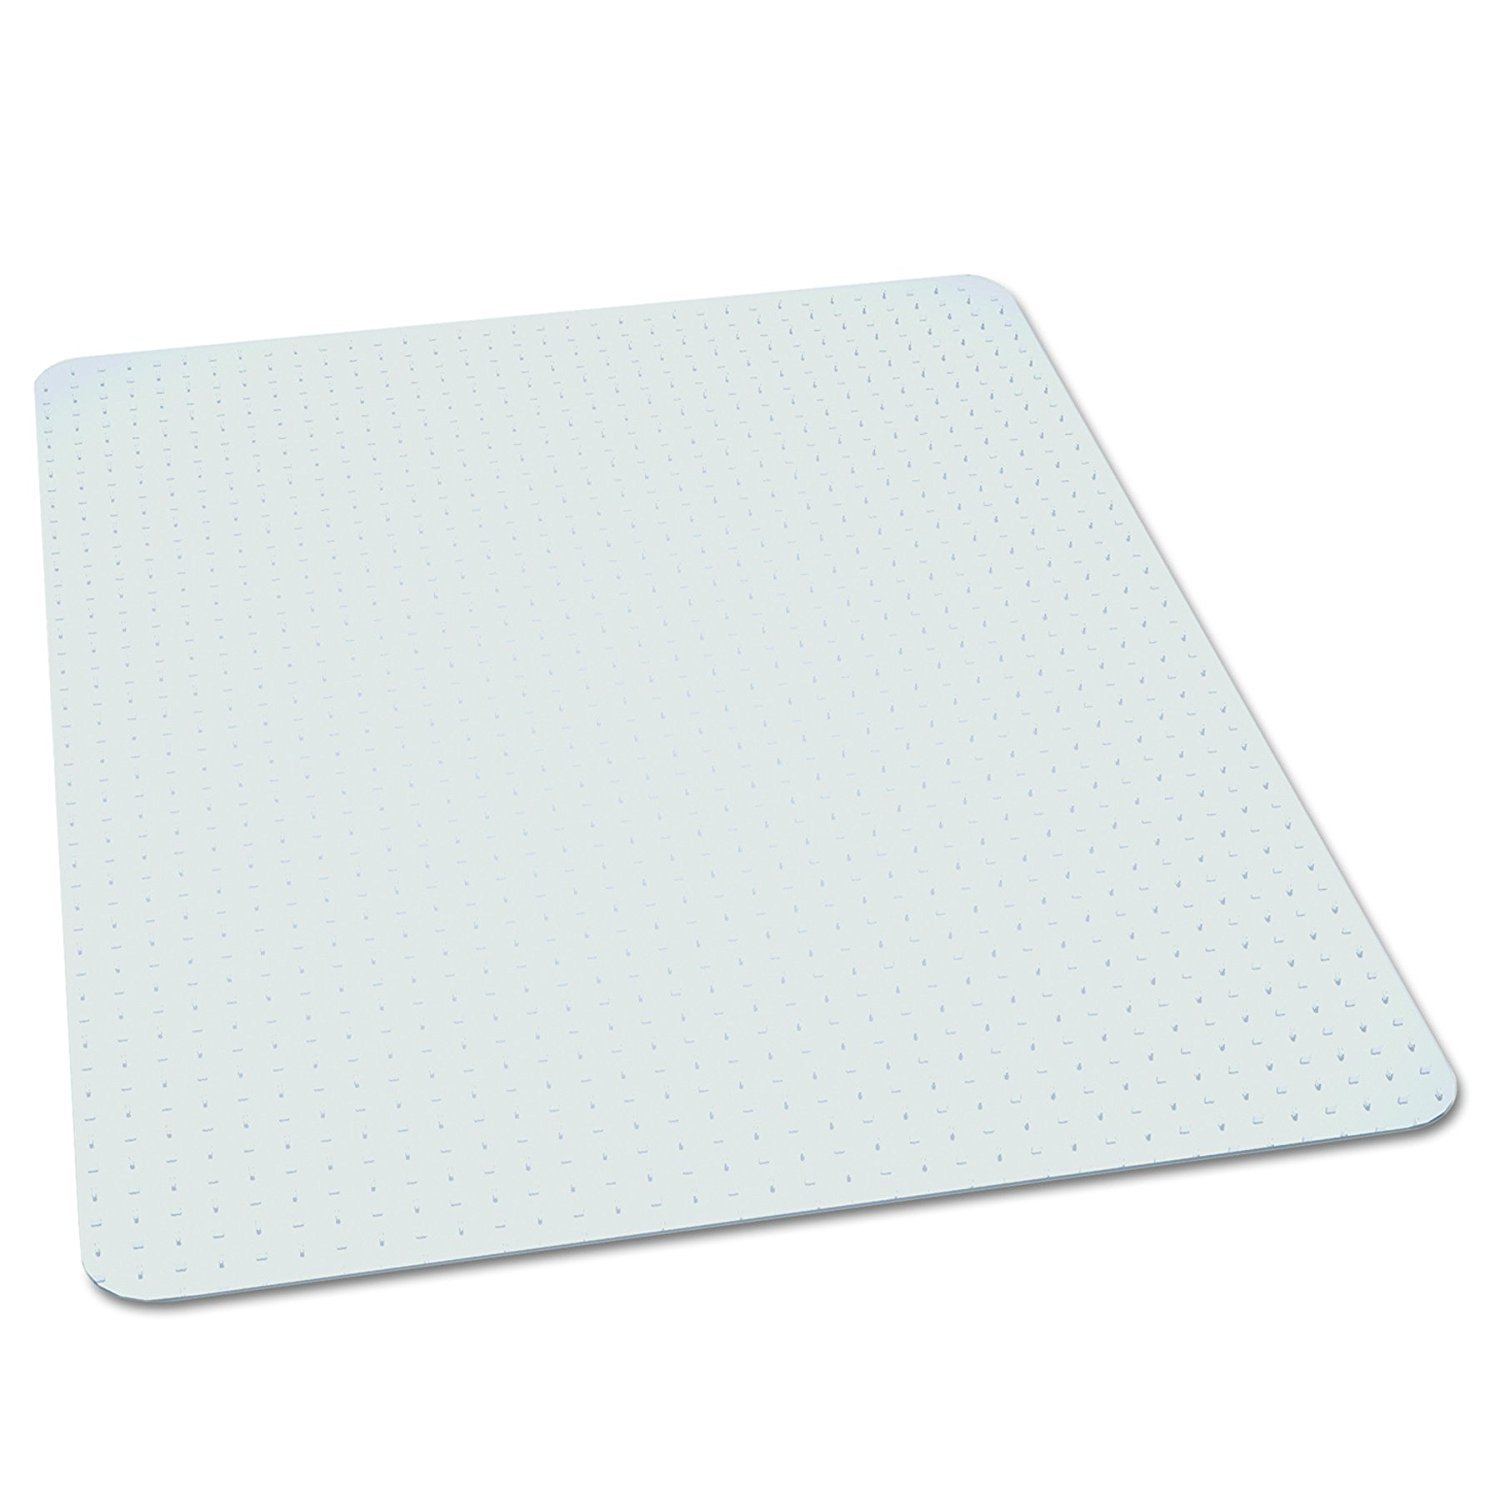 72'' x 96'' - Rectangle Premium Thickness Chair Mats | Superior 1/5 Inch Thickness Specifically Designed For Thick Carpet | Easy Chair Roll | No-Crack Guarantee | Free Lifetime Replacement